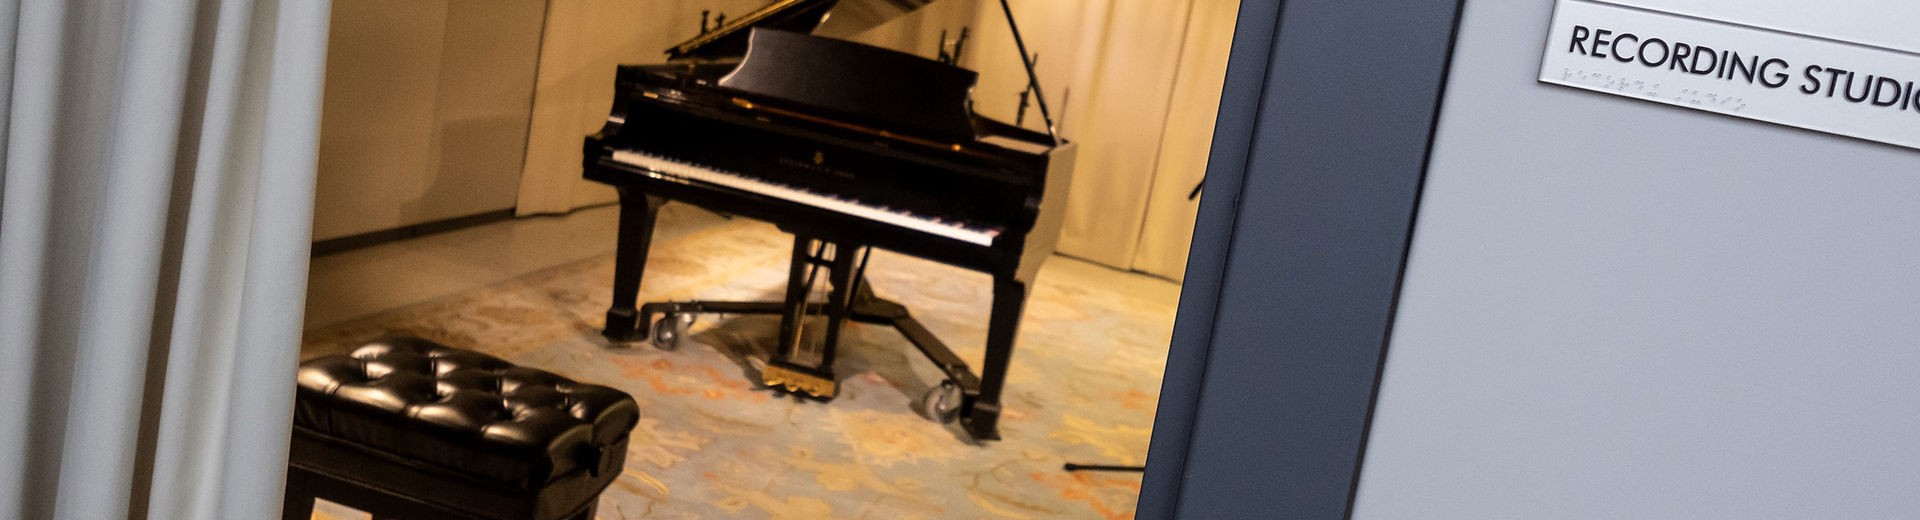 Practice room in music school with a grand piano and blue patterned carpet